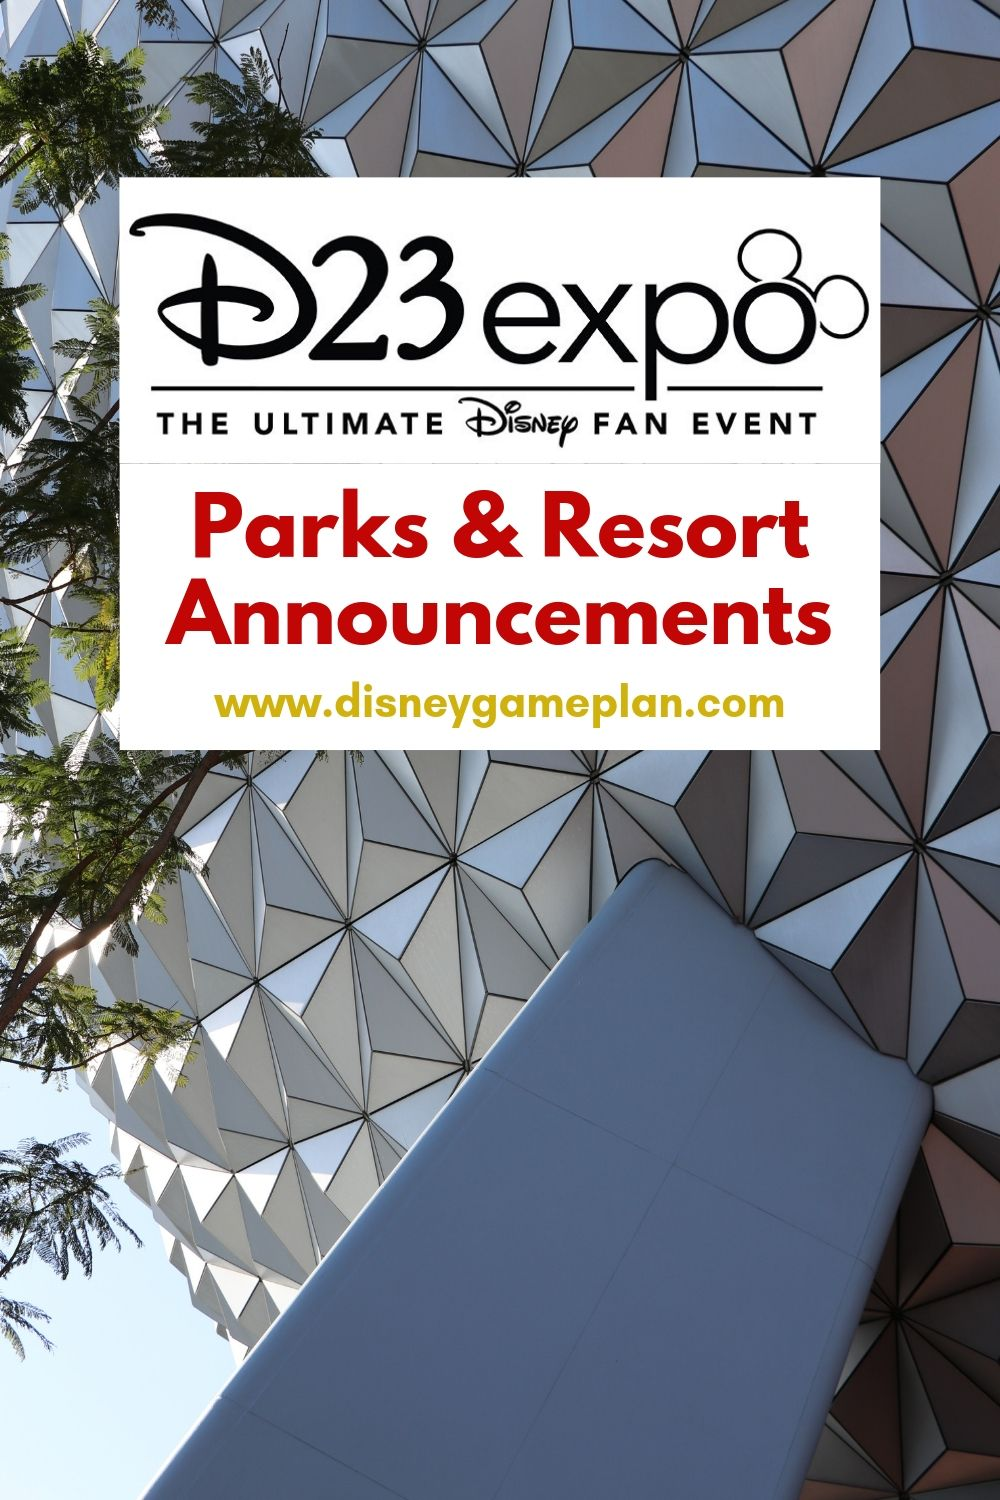 The D23 Expo 2019 has come and gone, check out the details on these Announcements for Walt Disney World and EPCOT at the D23 fan event. #DisneyTips #DisneyWorld #D23Expo